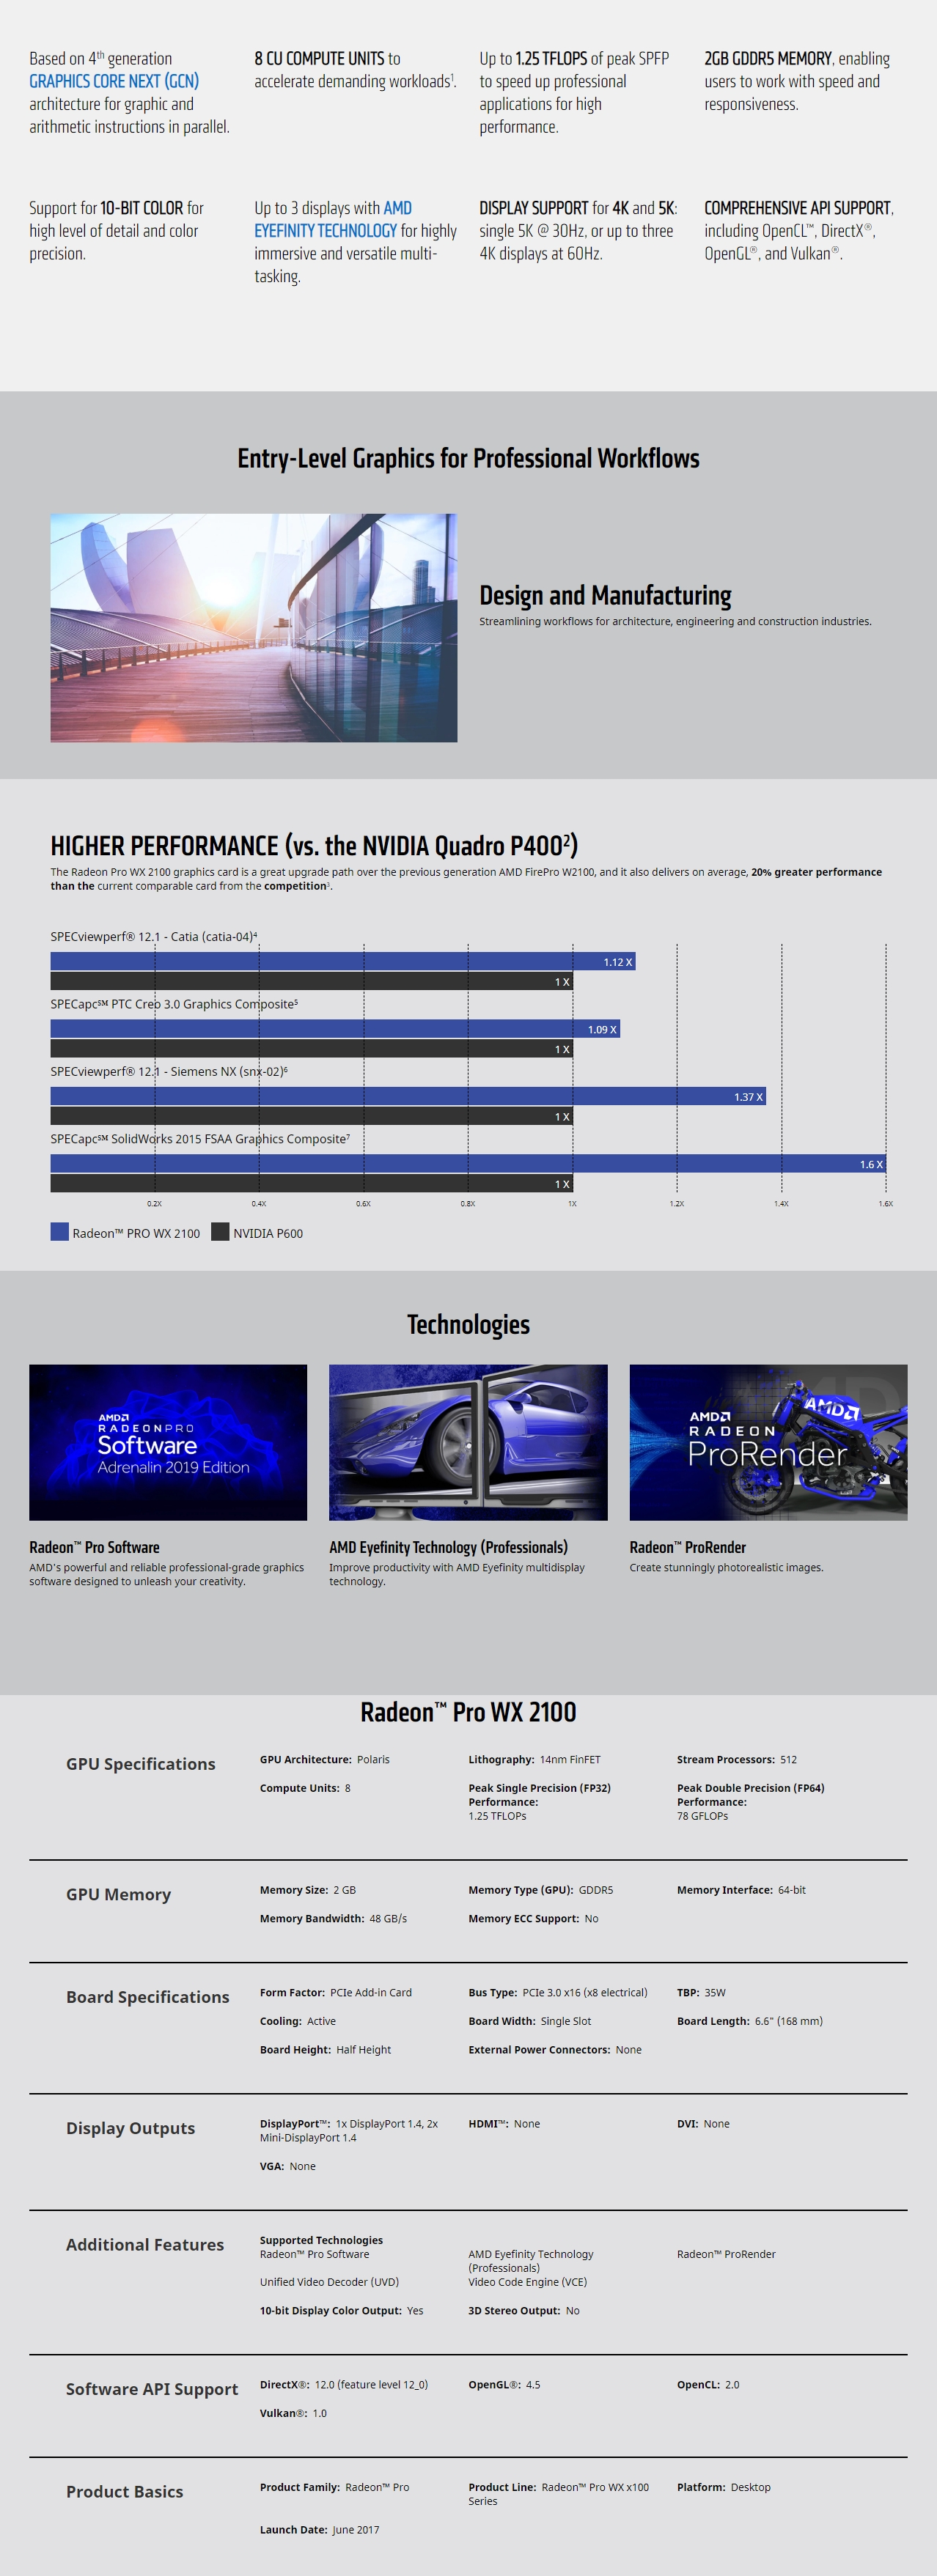 A large marketing image providing additional information about the product AMD Radeon Pro WX 2100 2GB GDDR5 - Additional alt info not provided